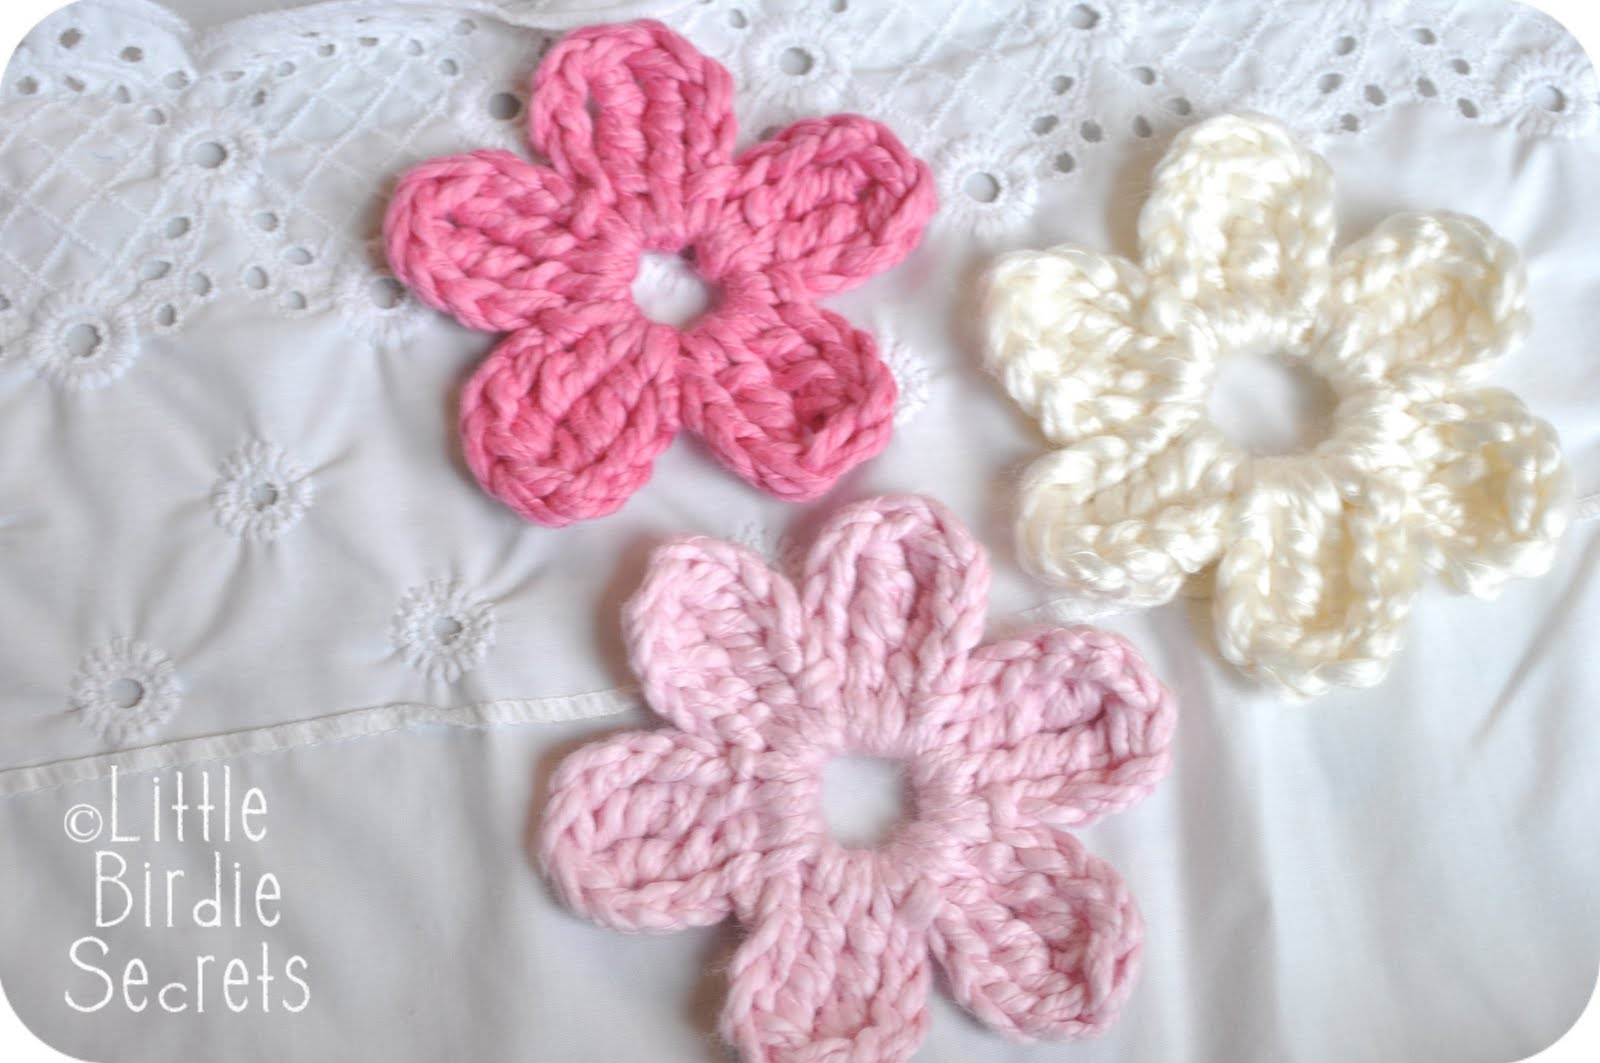 Crochet Patterns: Kids Hats - Free Crochet Patterns